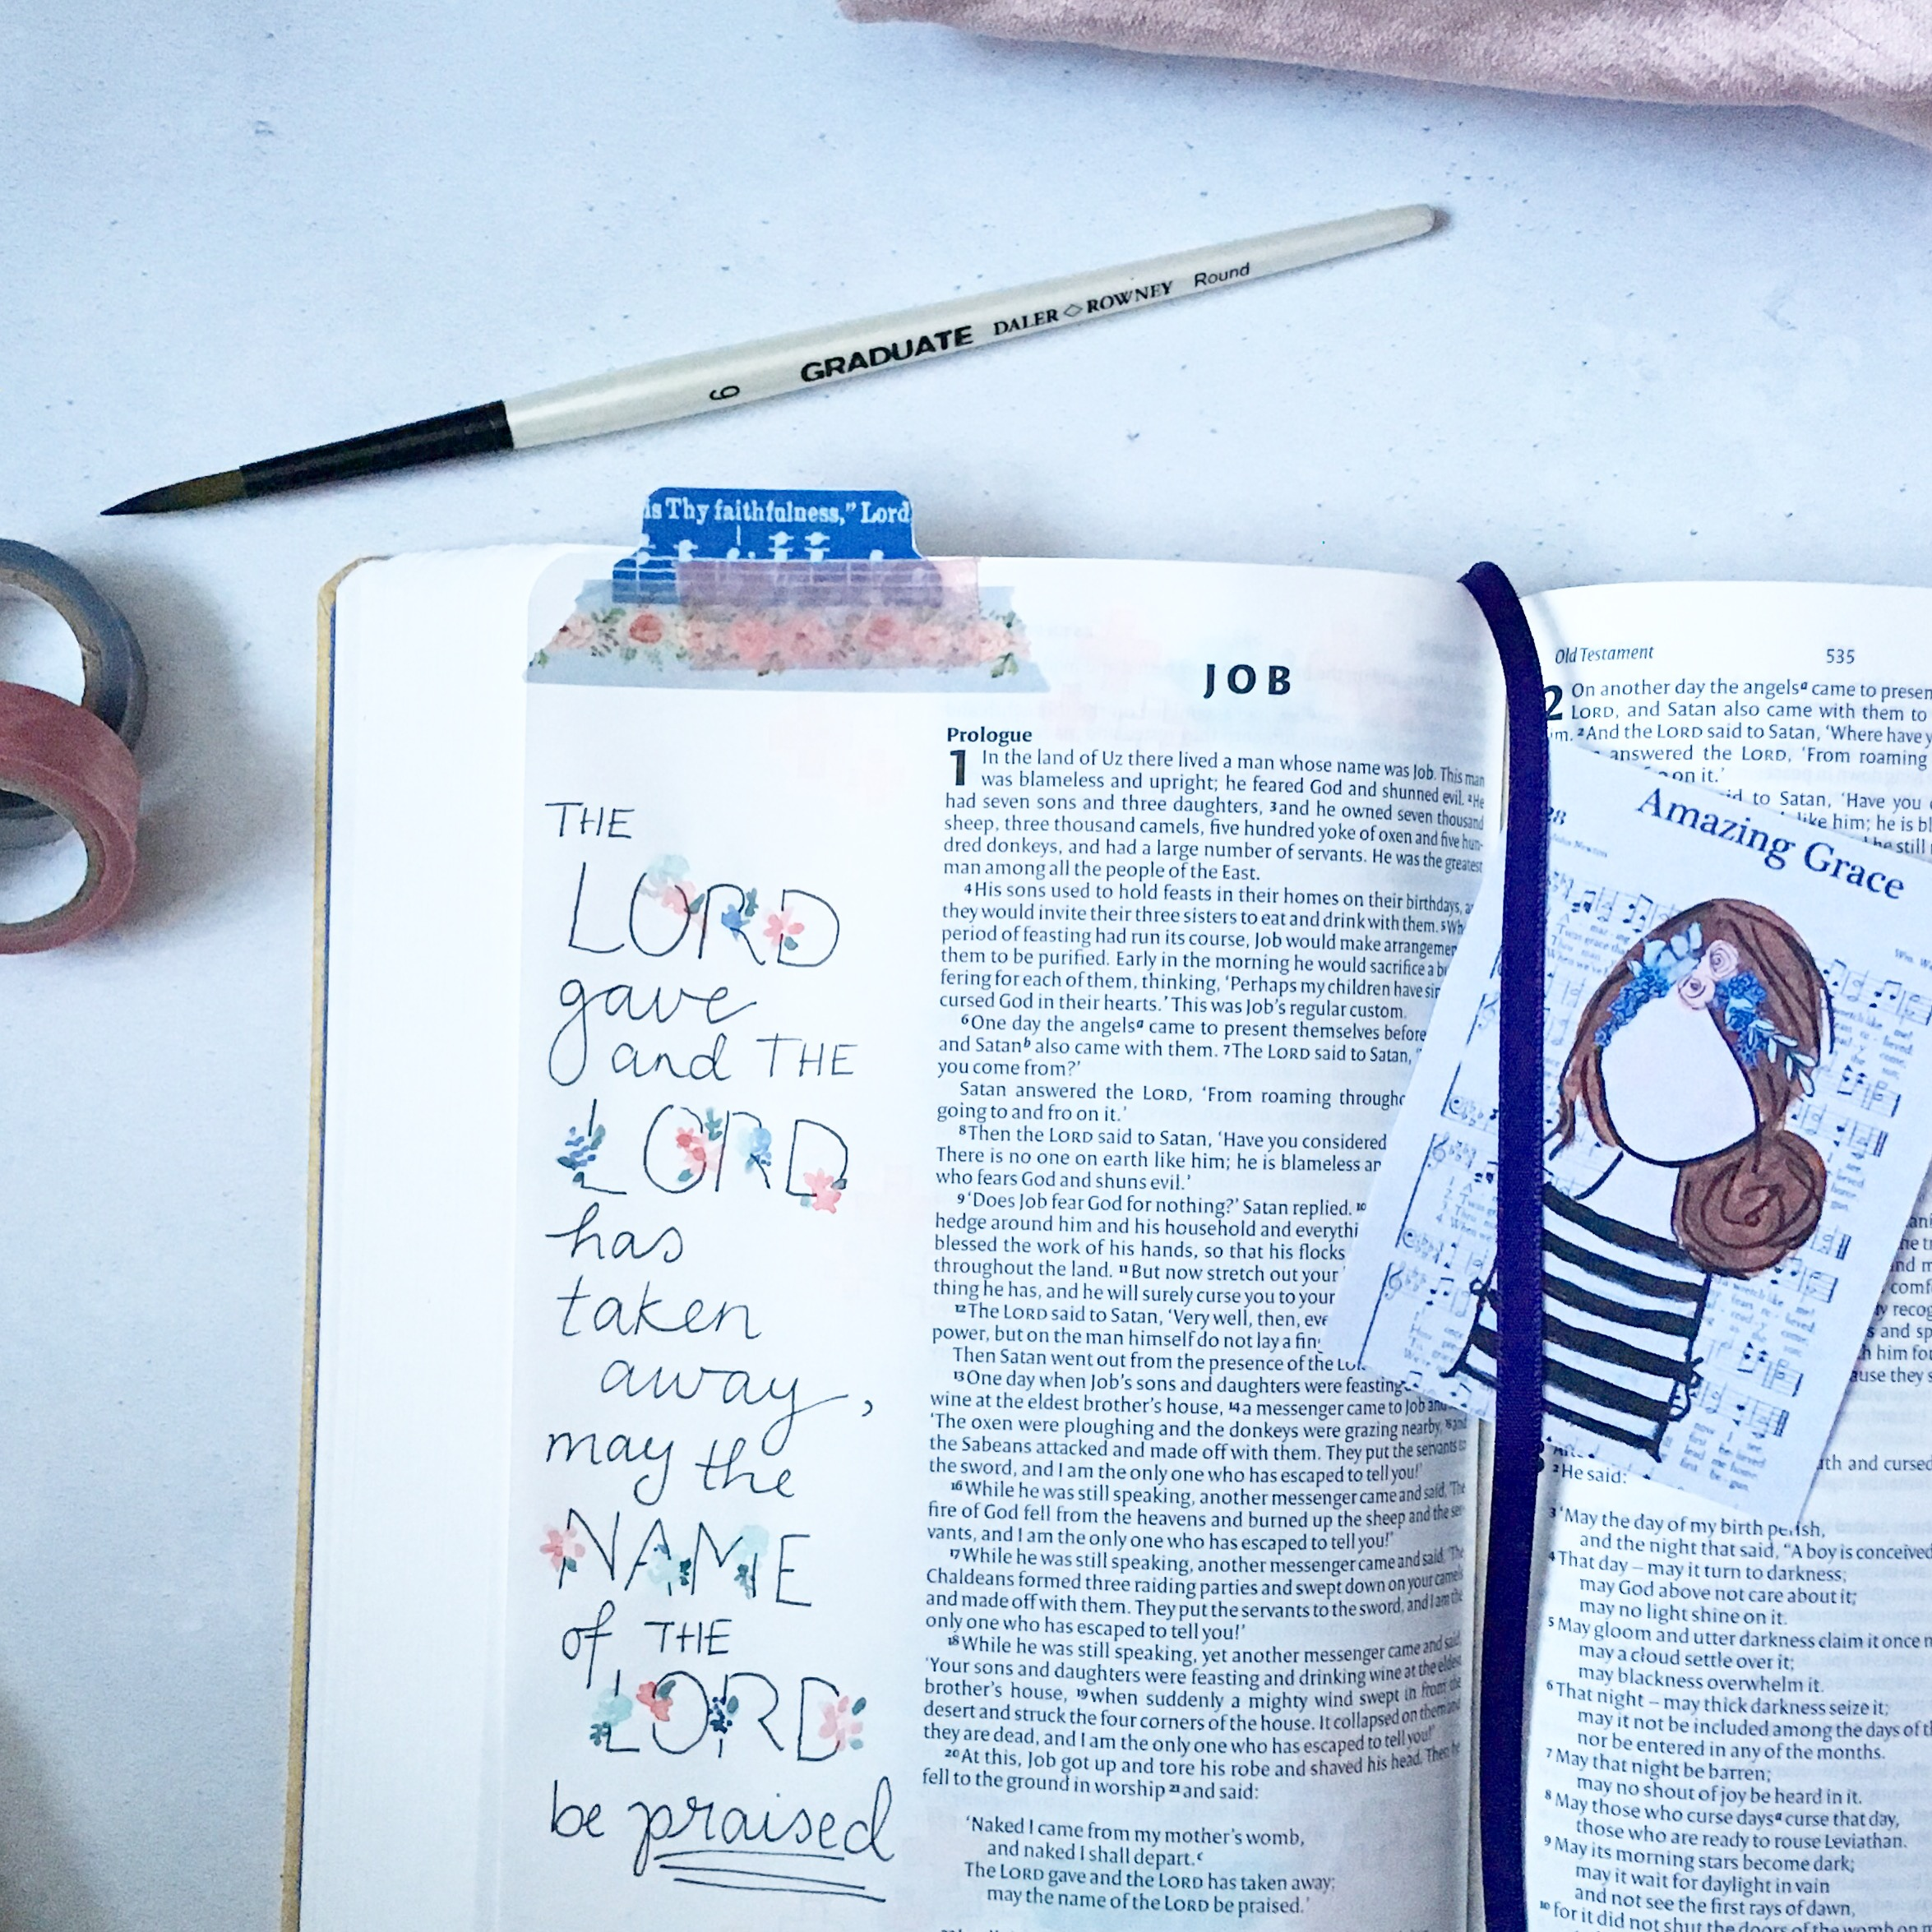 Job | Bible in a year